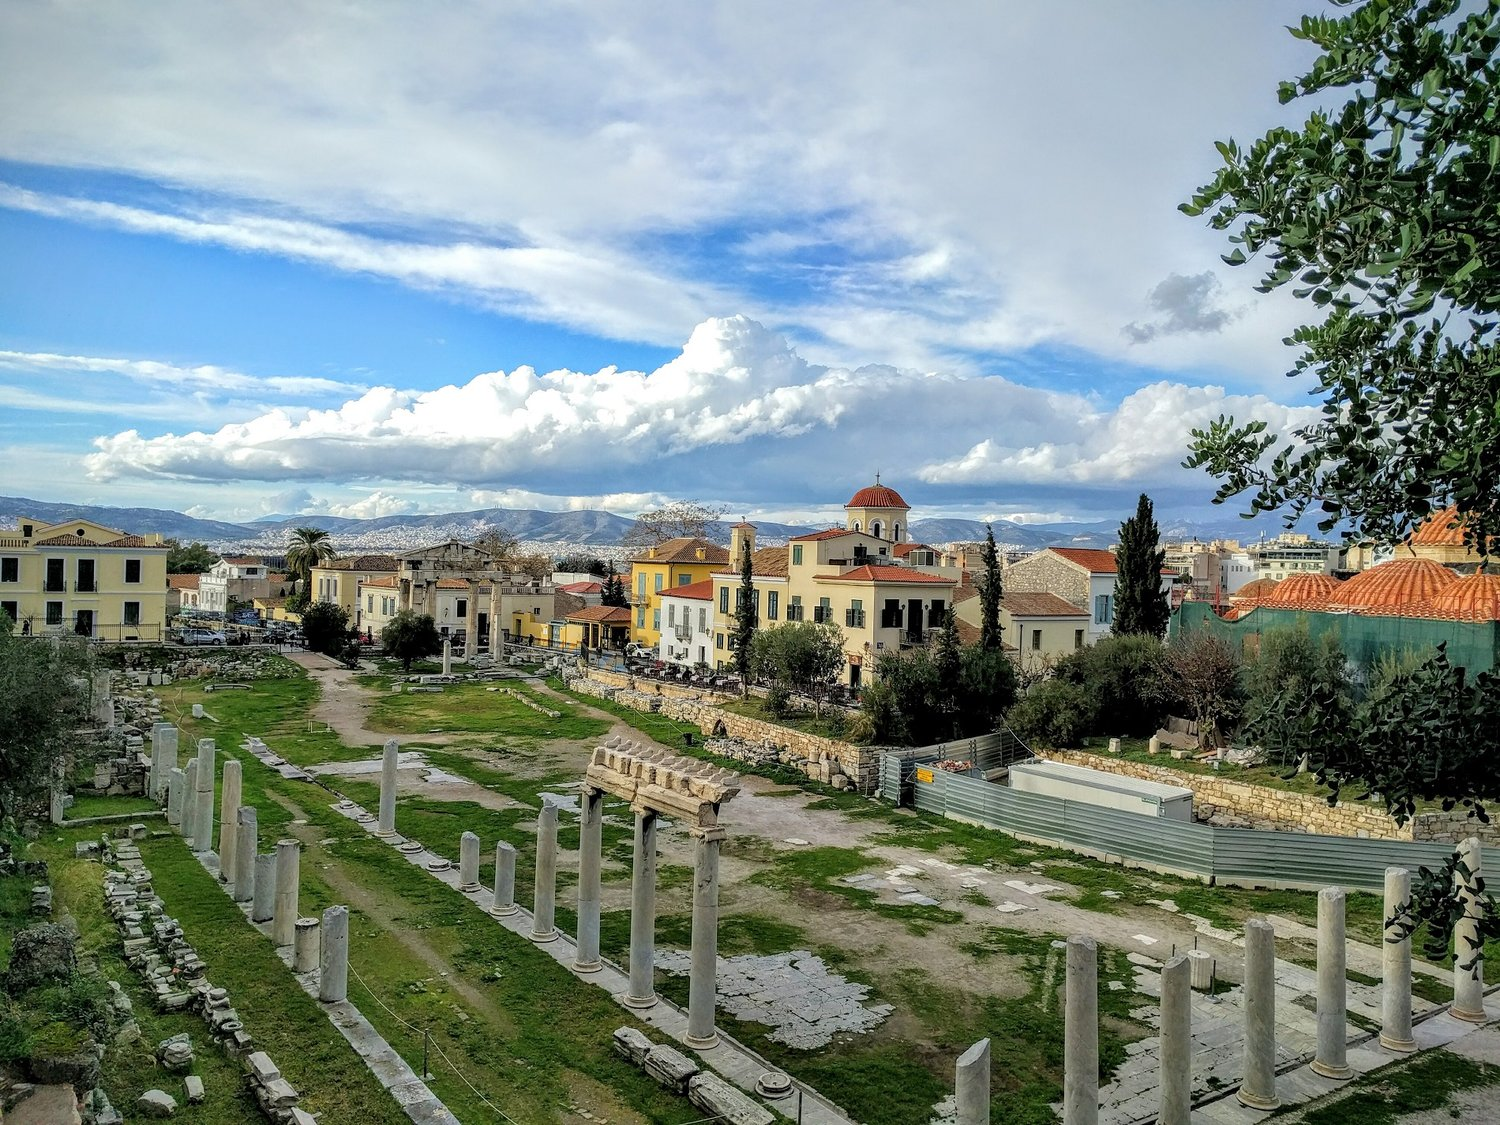 The Roman Agora. Source: Truevoyagers